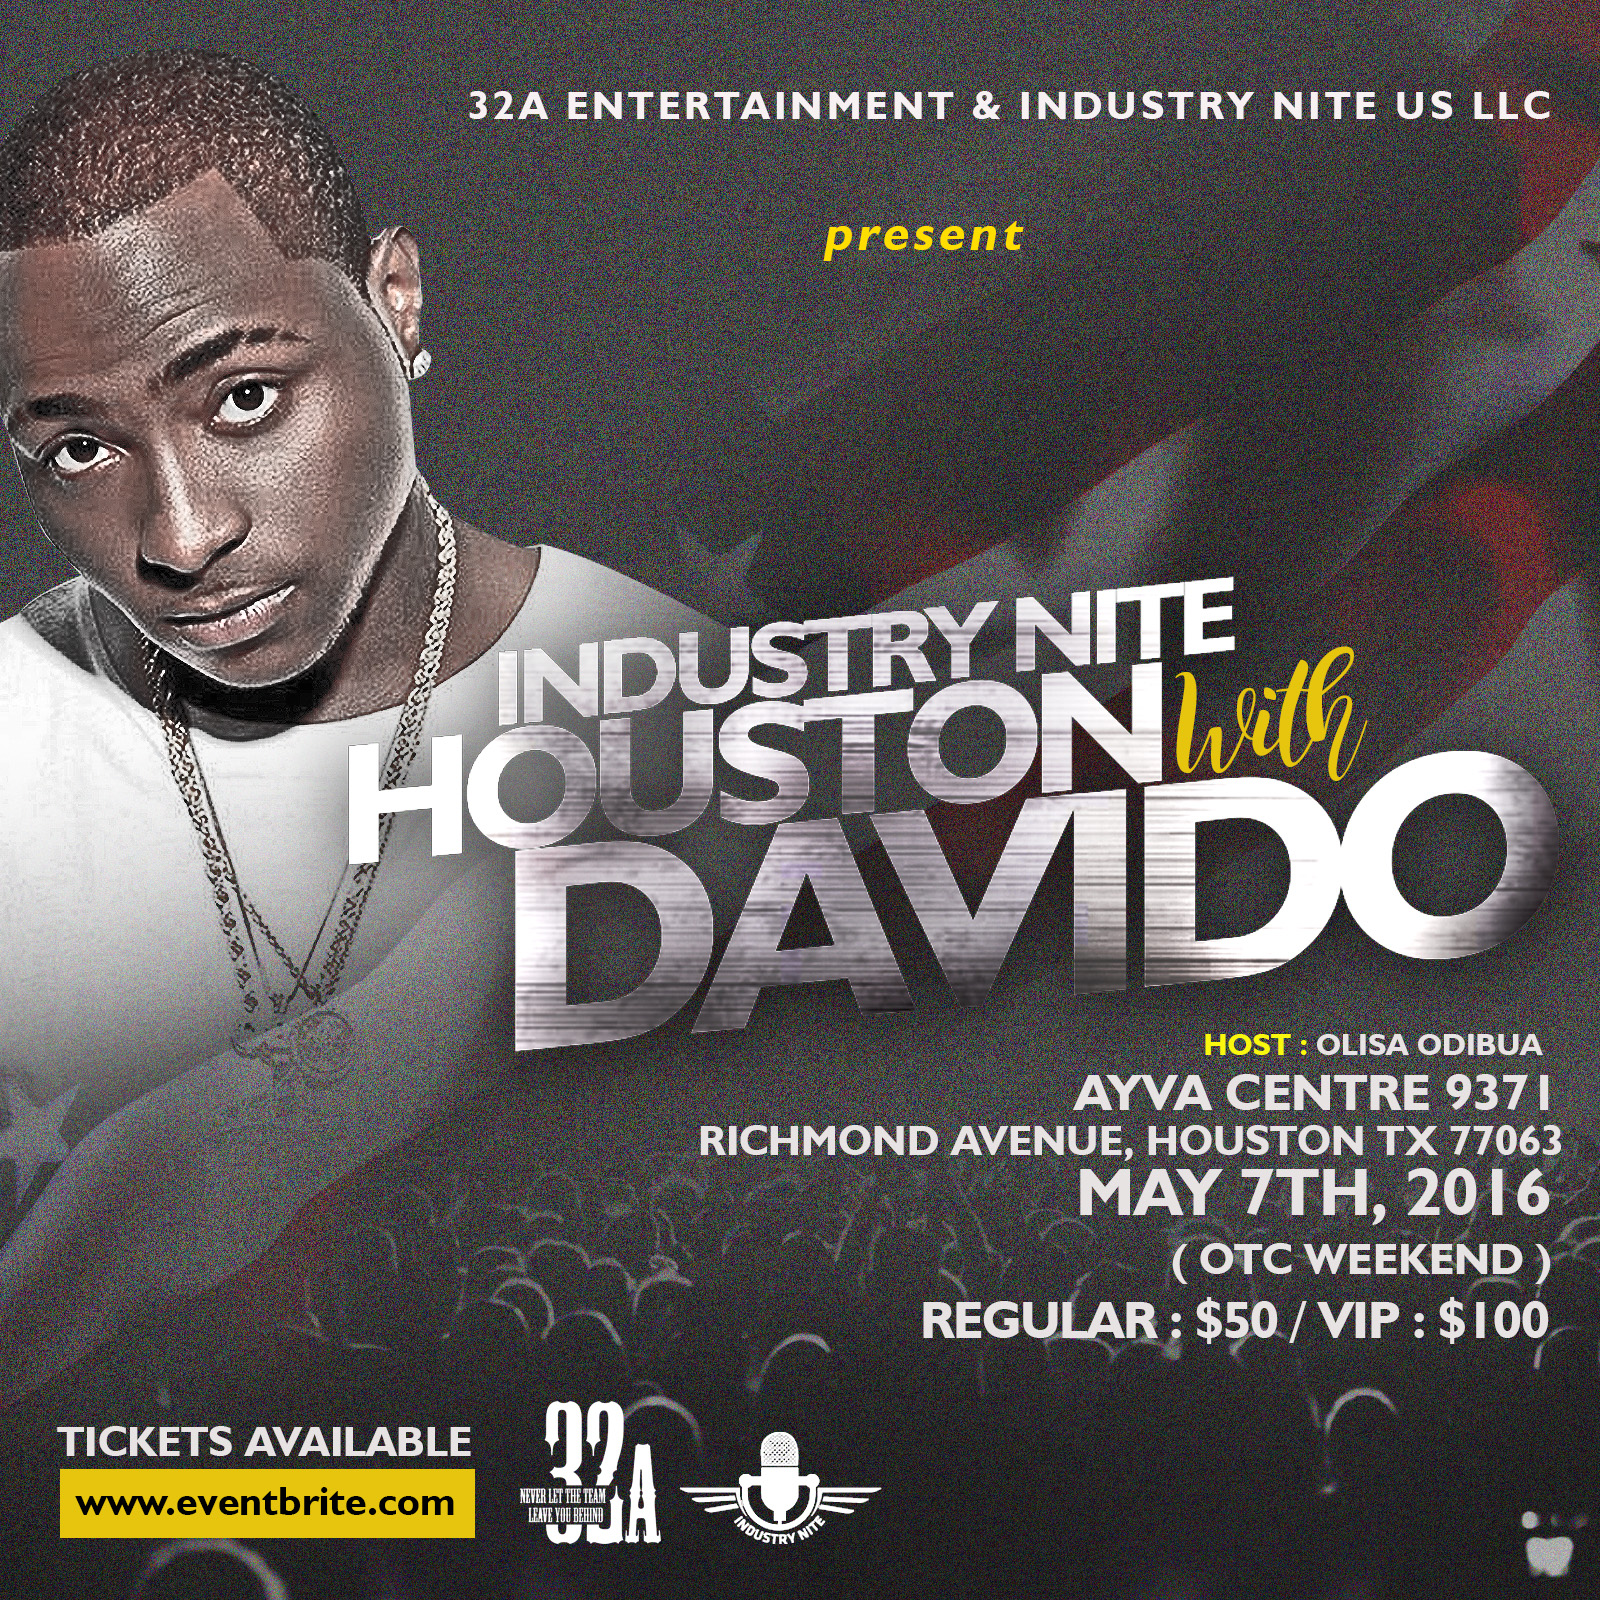 Win Tickets to See Davido @ Industry Nite Houston on May 7